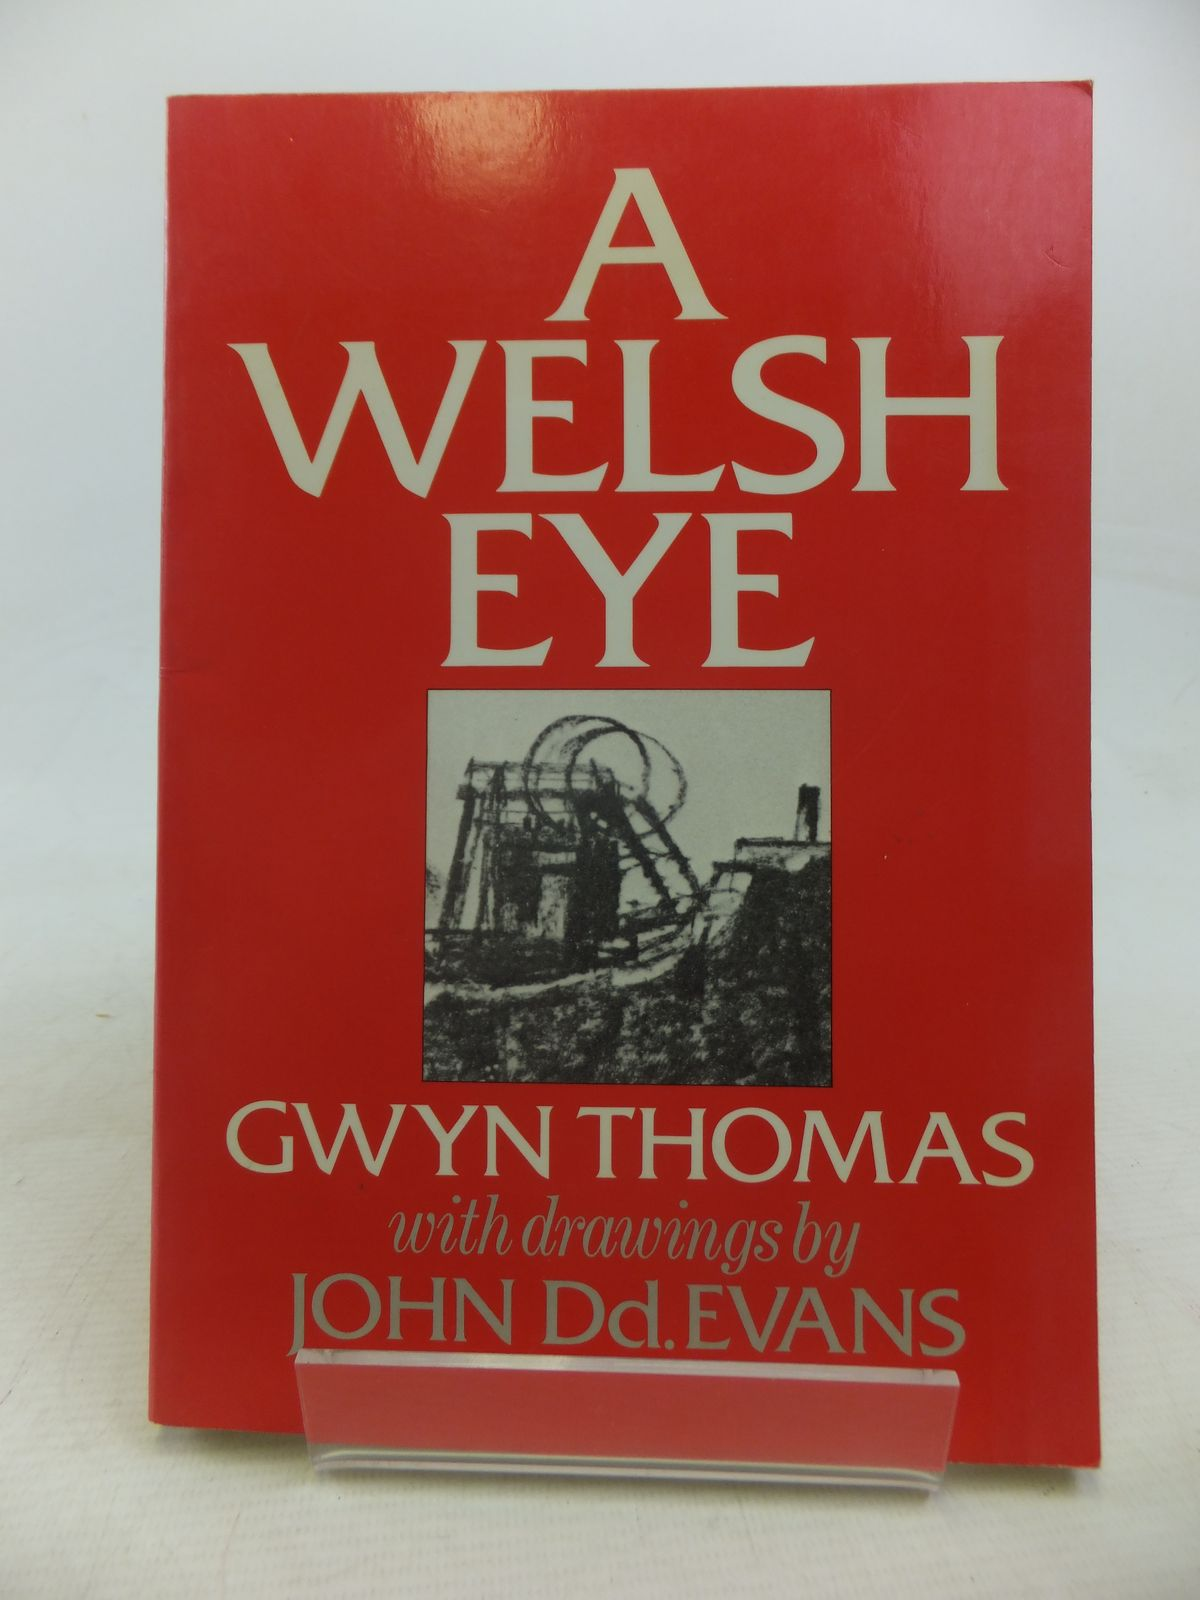 Photo of A WELSH EYE written by Thomas, Gwyn illustrated by Evans, John Dd. published by Hutchinson (STOCK CODE: 1809574)  for sale by Stella & Rose's Books